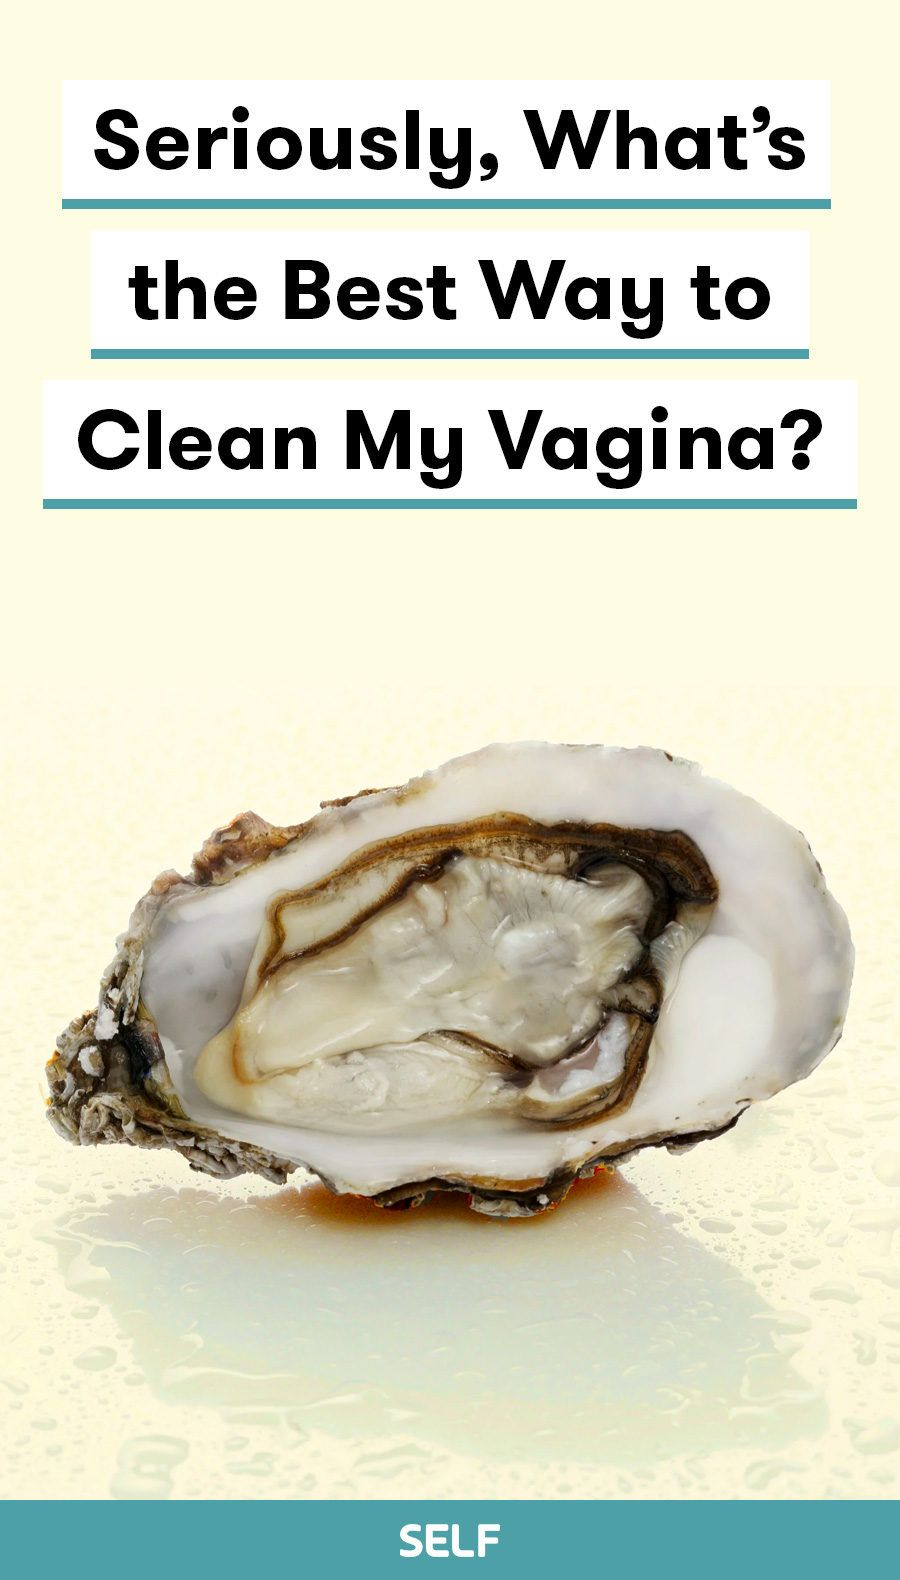 Seriously, What's the Best Way to Clean My Vagina?